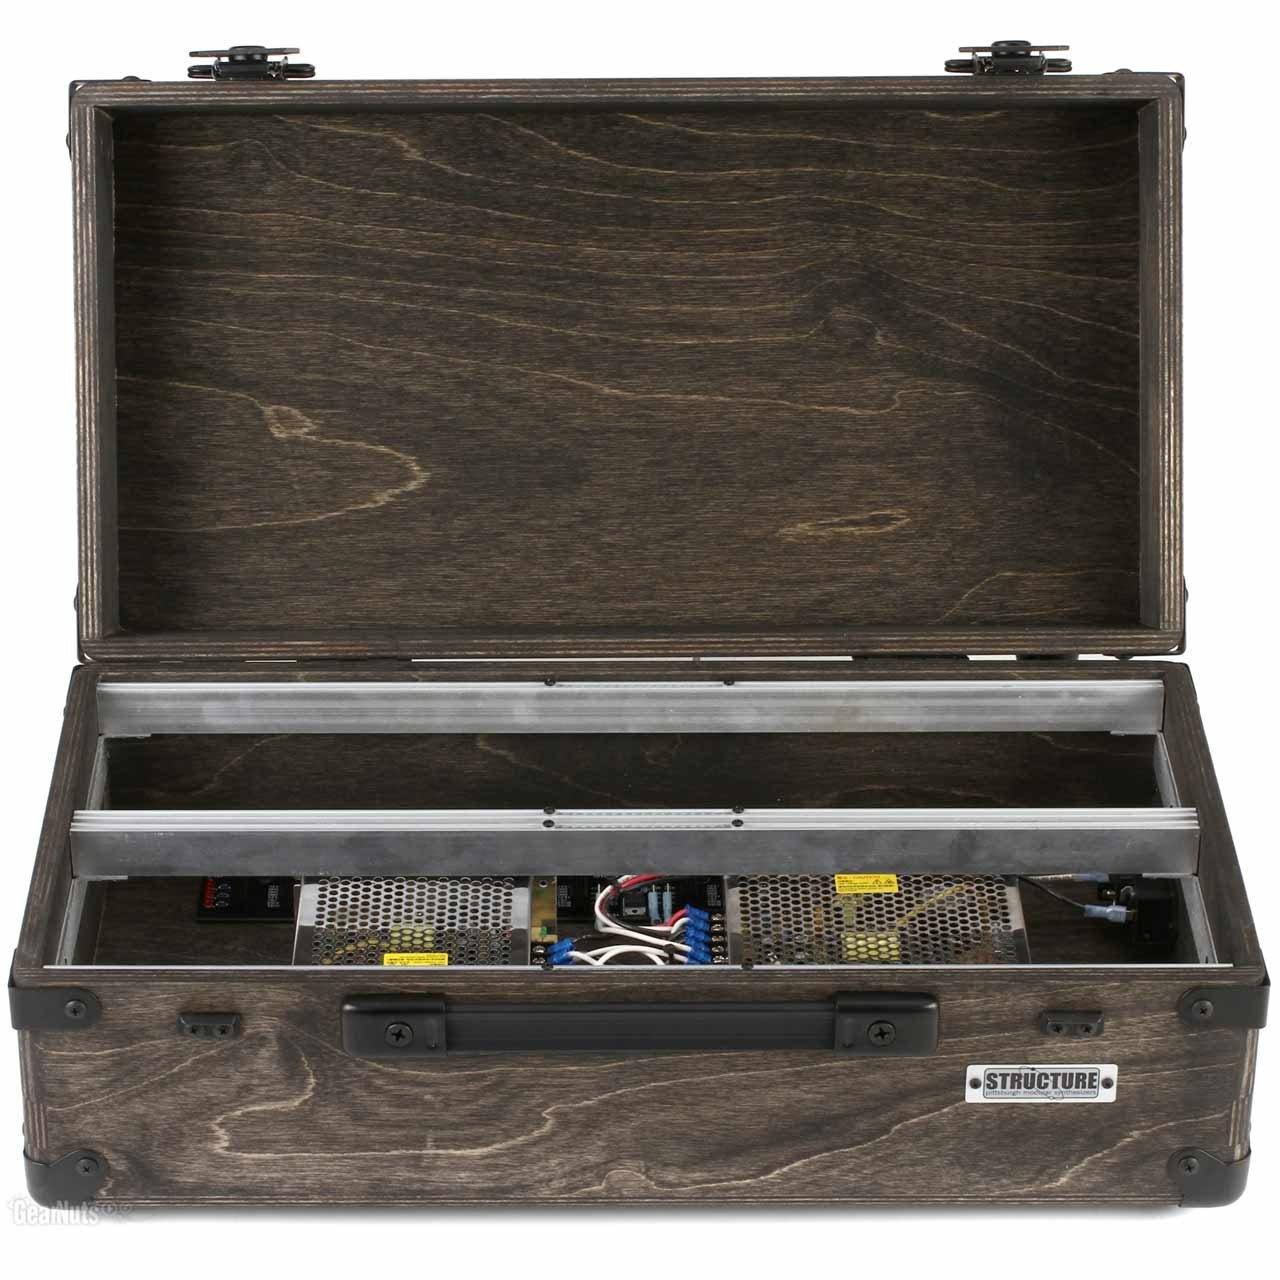 Eurorack Accessories - Pittsburgh Modular Structure EP-208 - Eurorack Travel Case Enclosure